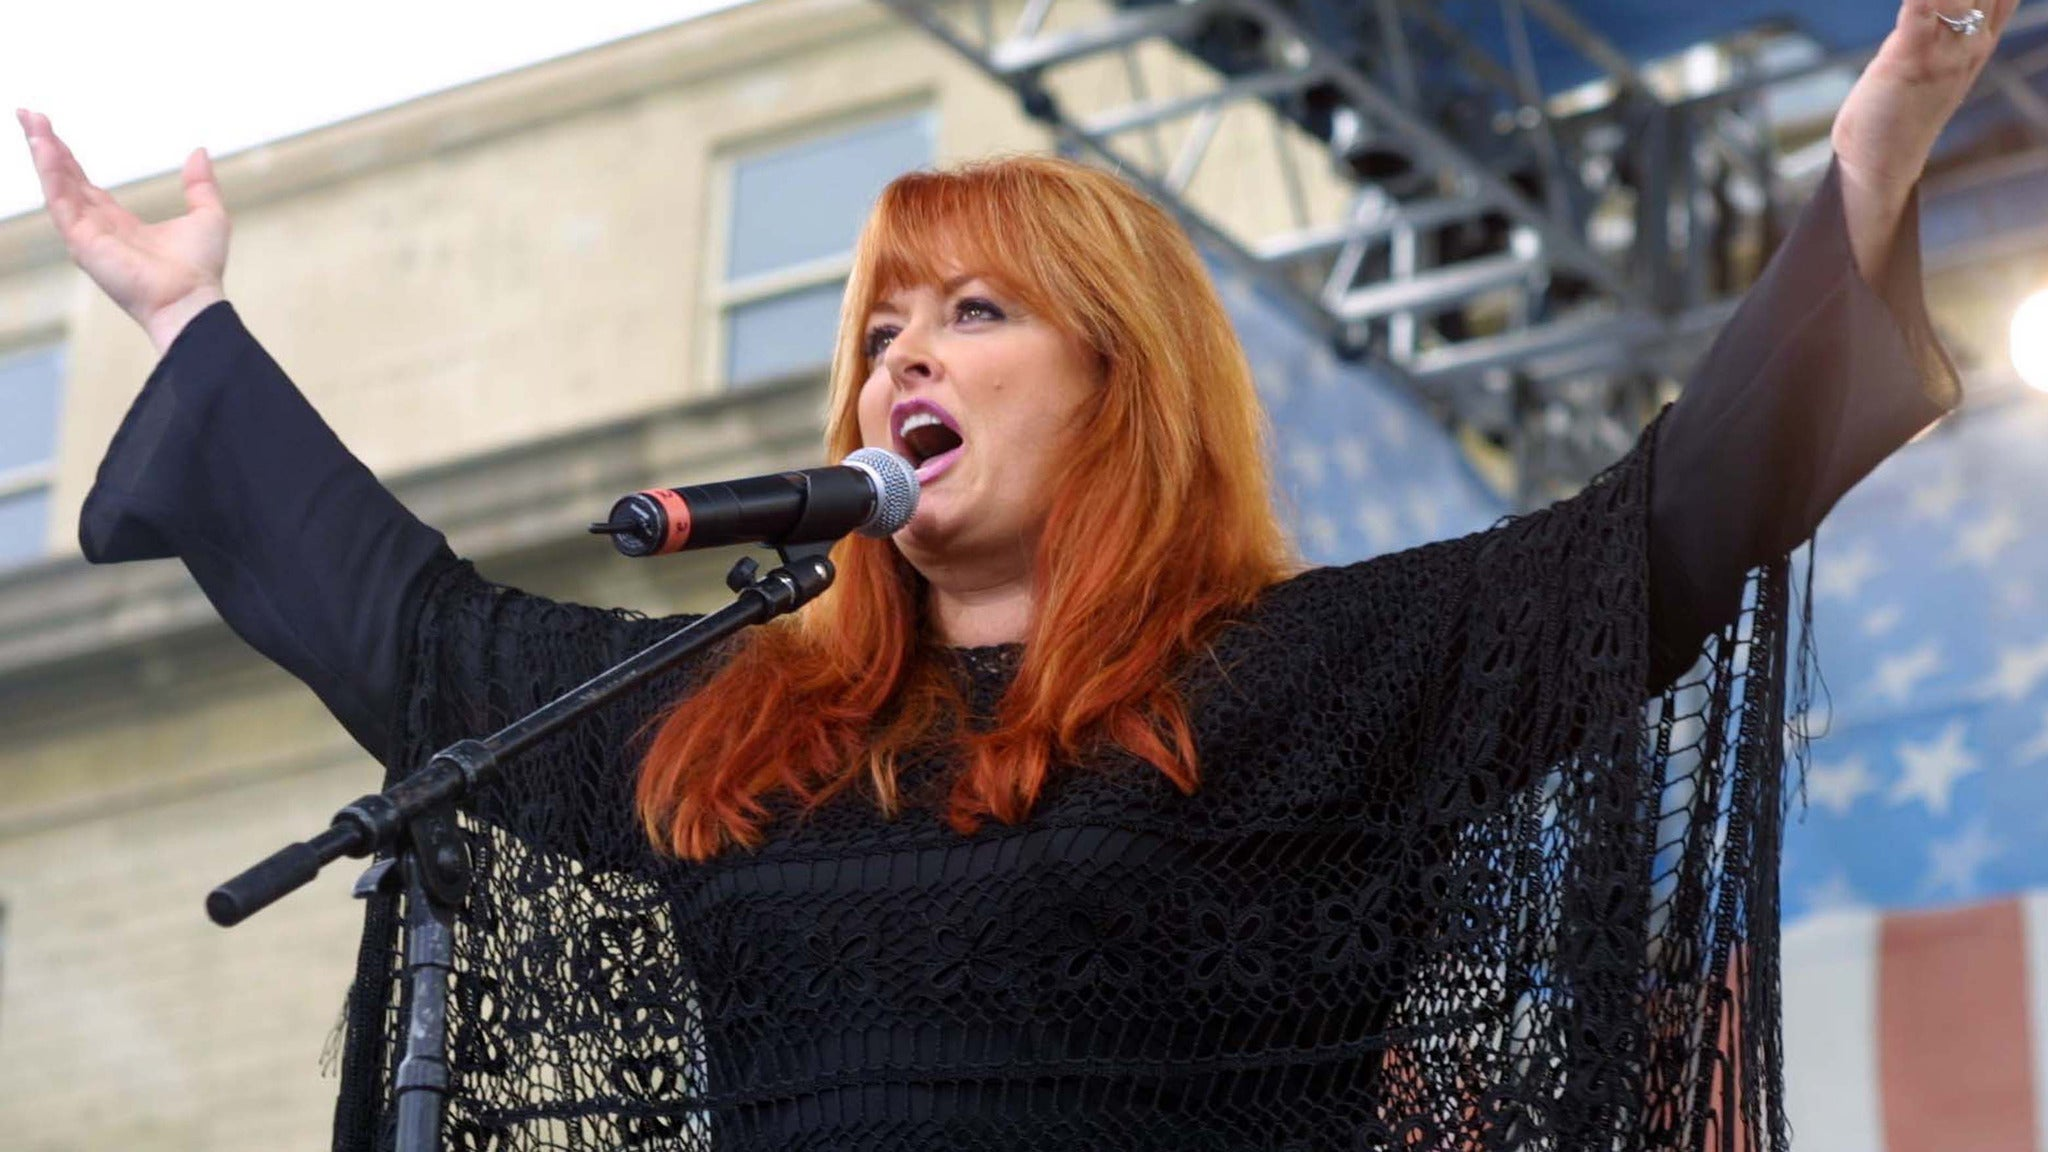 Wynonna Judd at United Wireless Arena